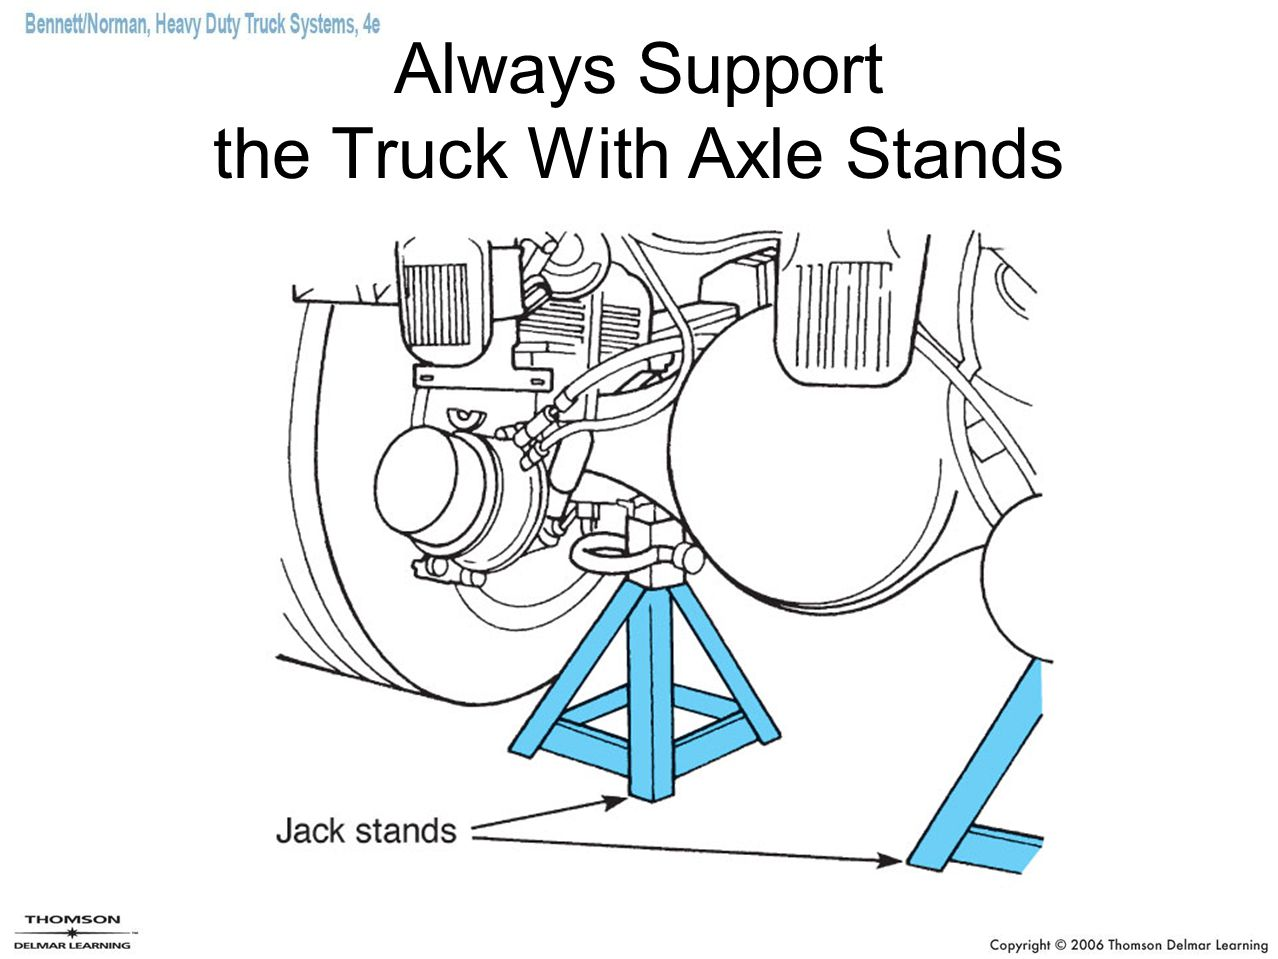 Always Support the Truck With Axle Stands